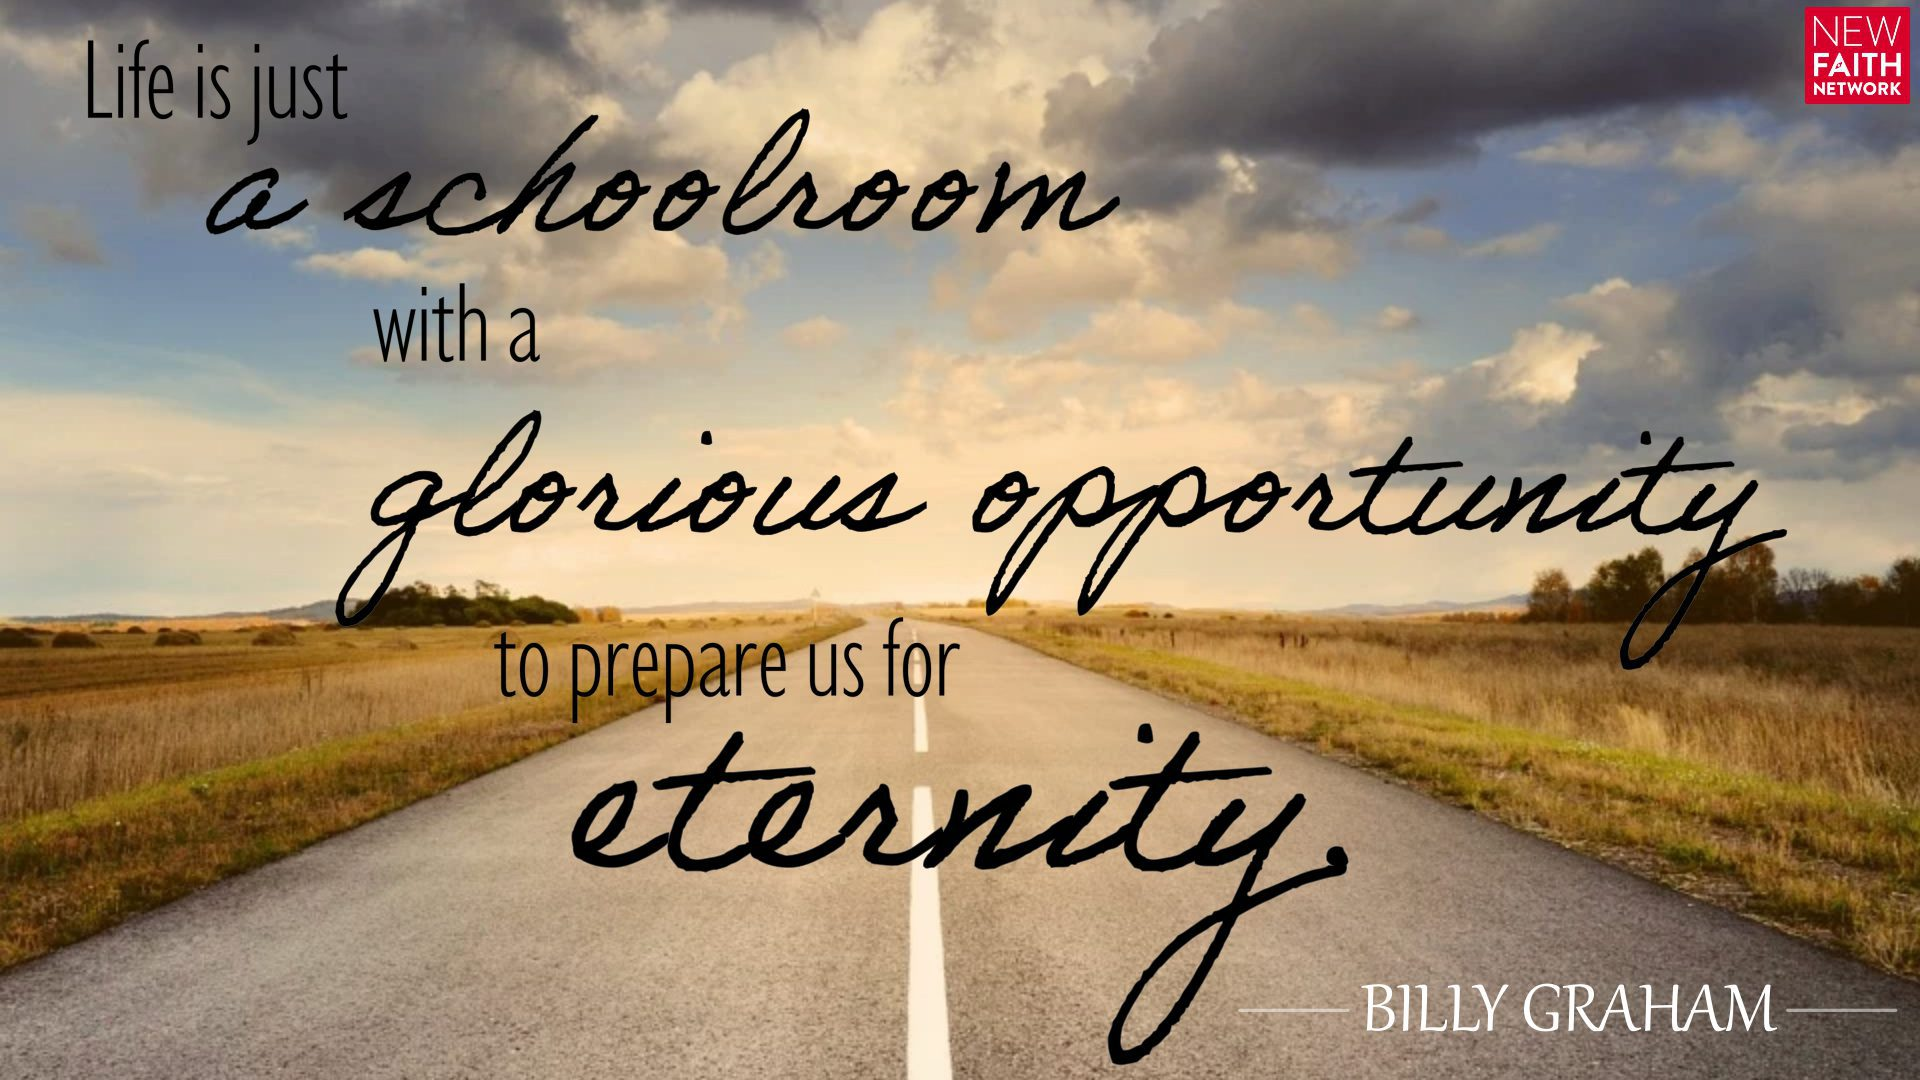 Life is just a schoolroom with a glorious opportunity to prepare us for eternity.